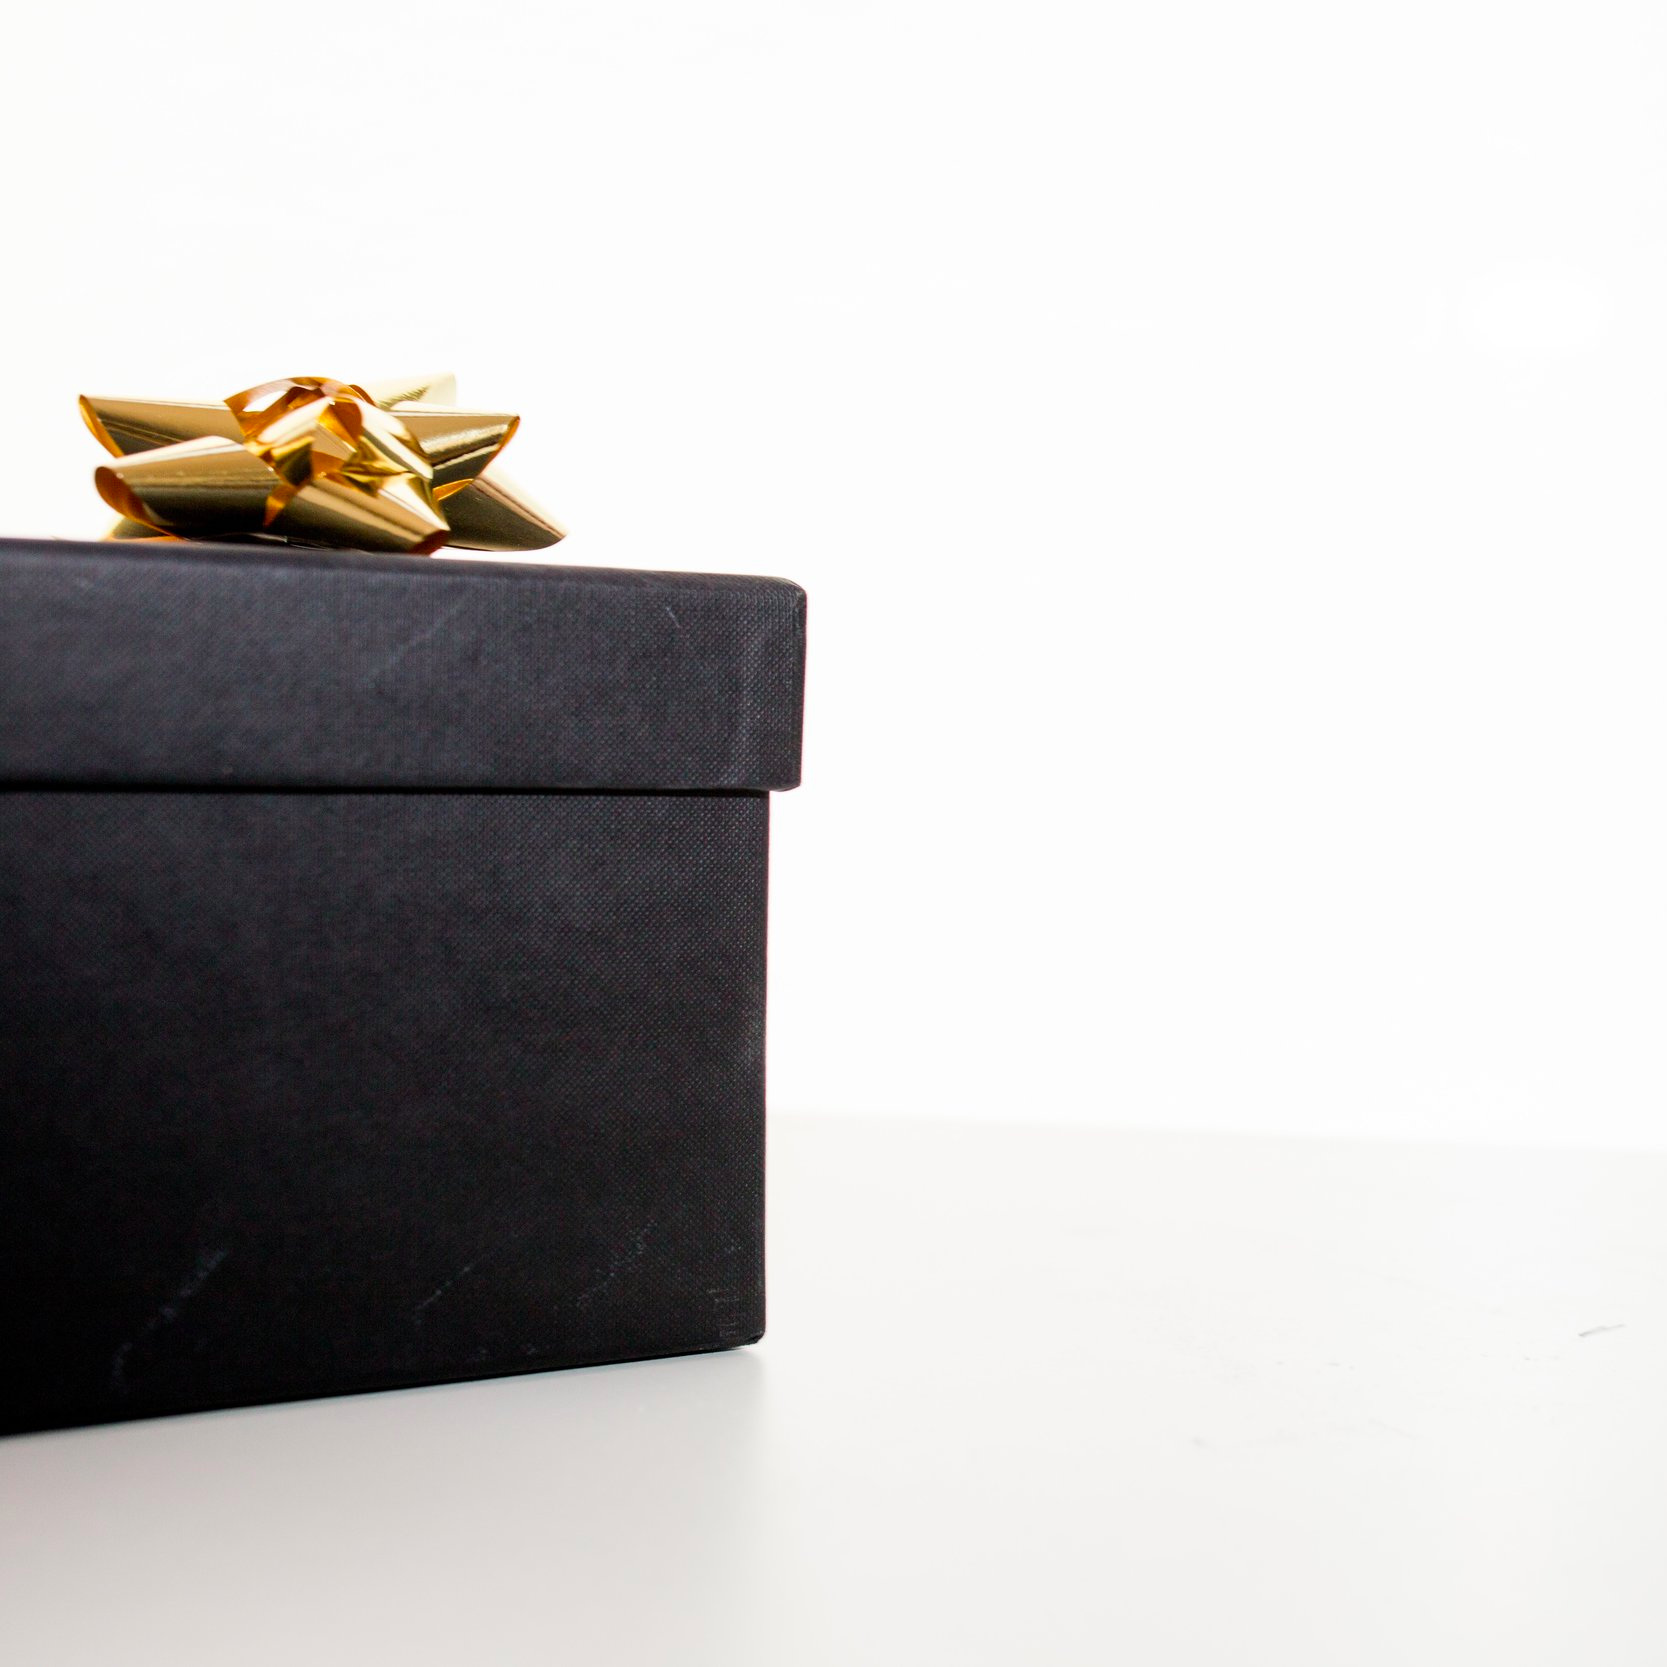 birthday-gift-bow-box-190930.jpg